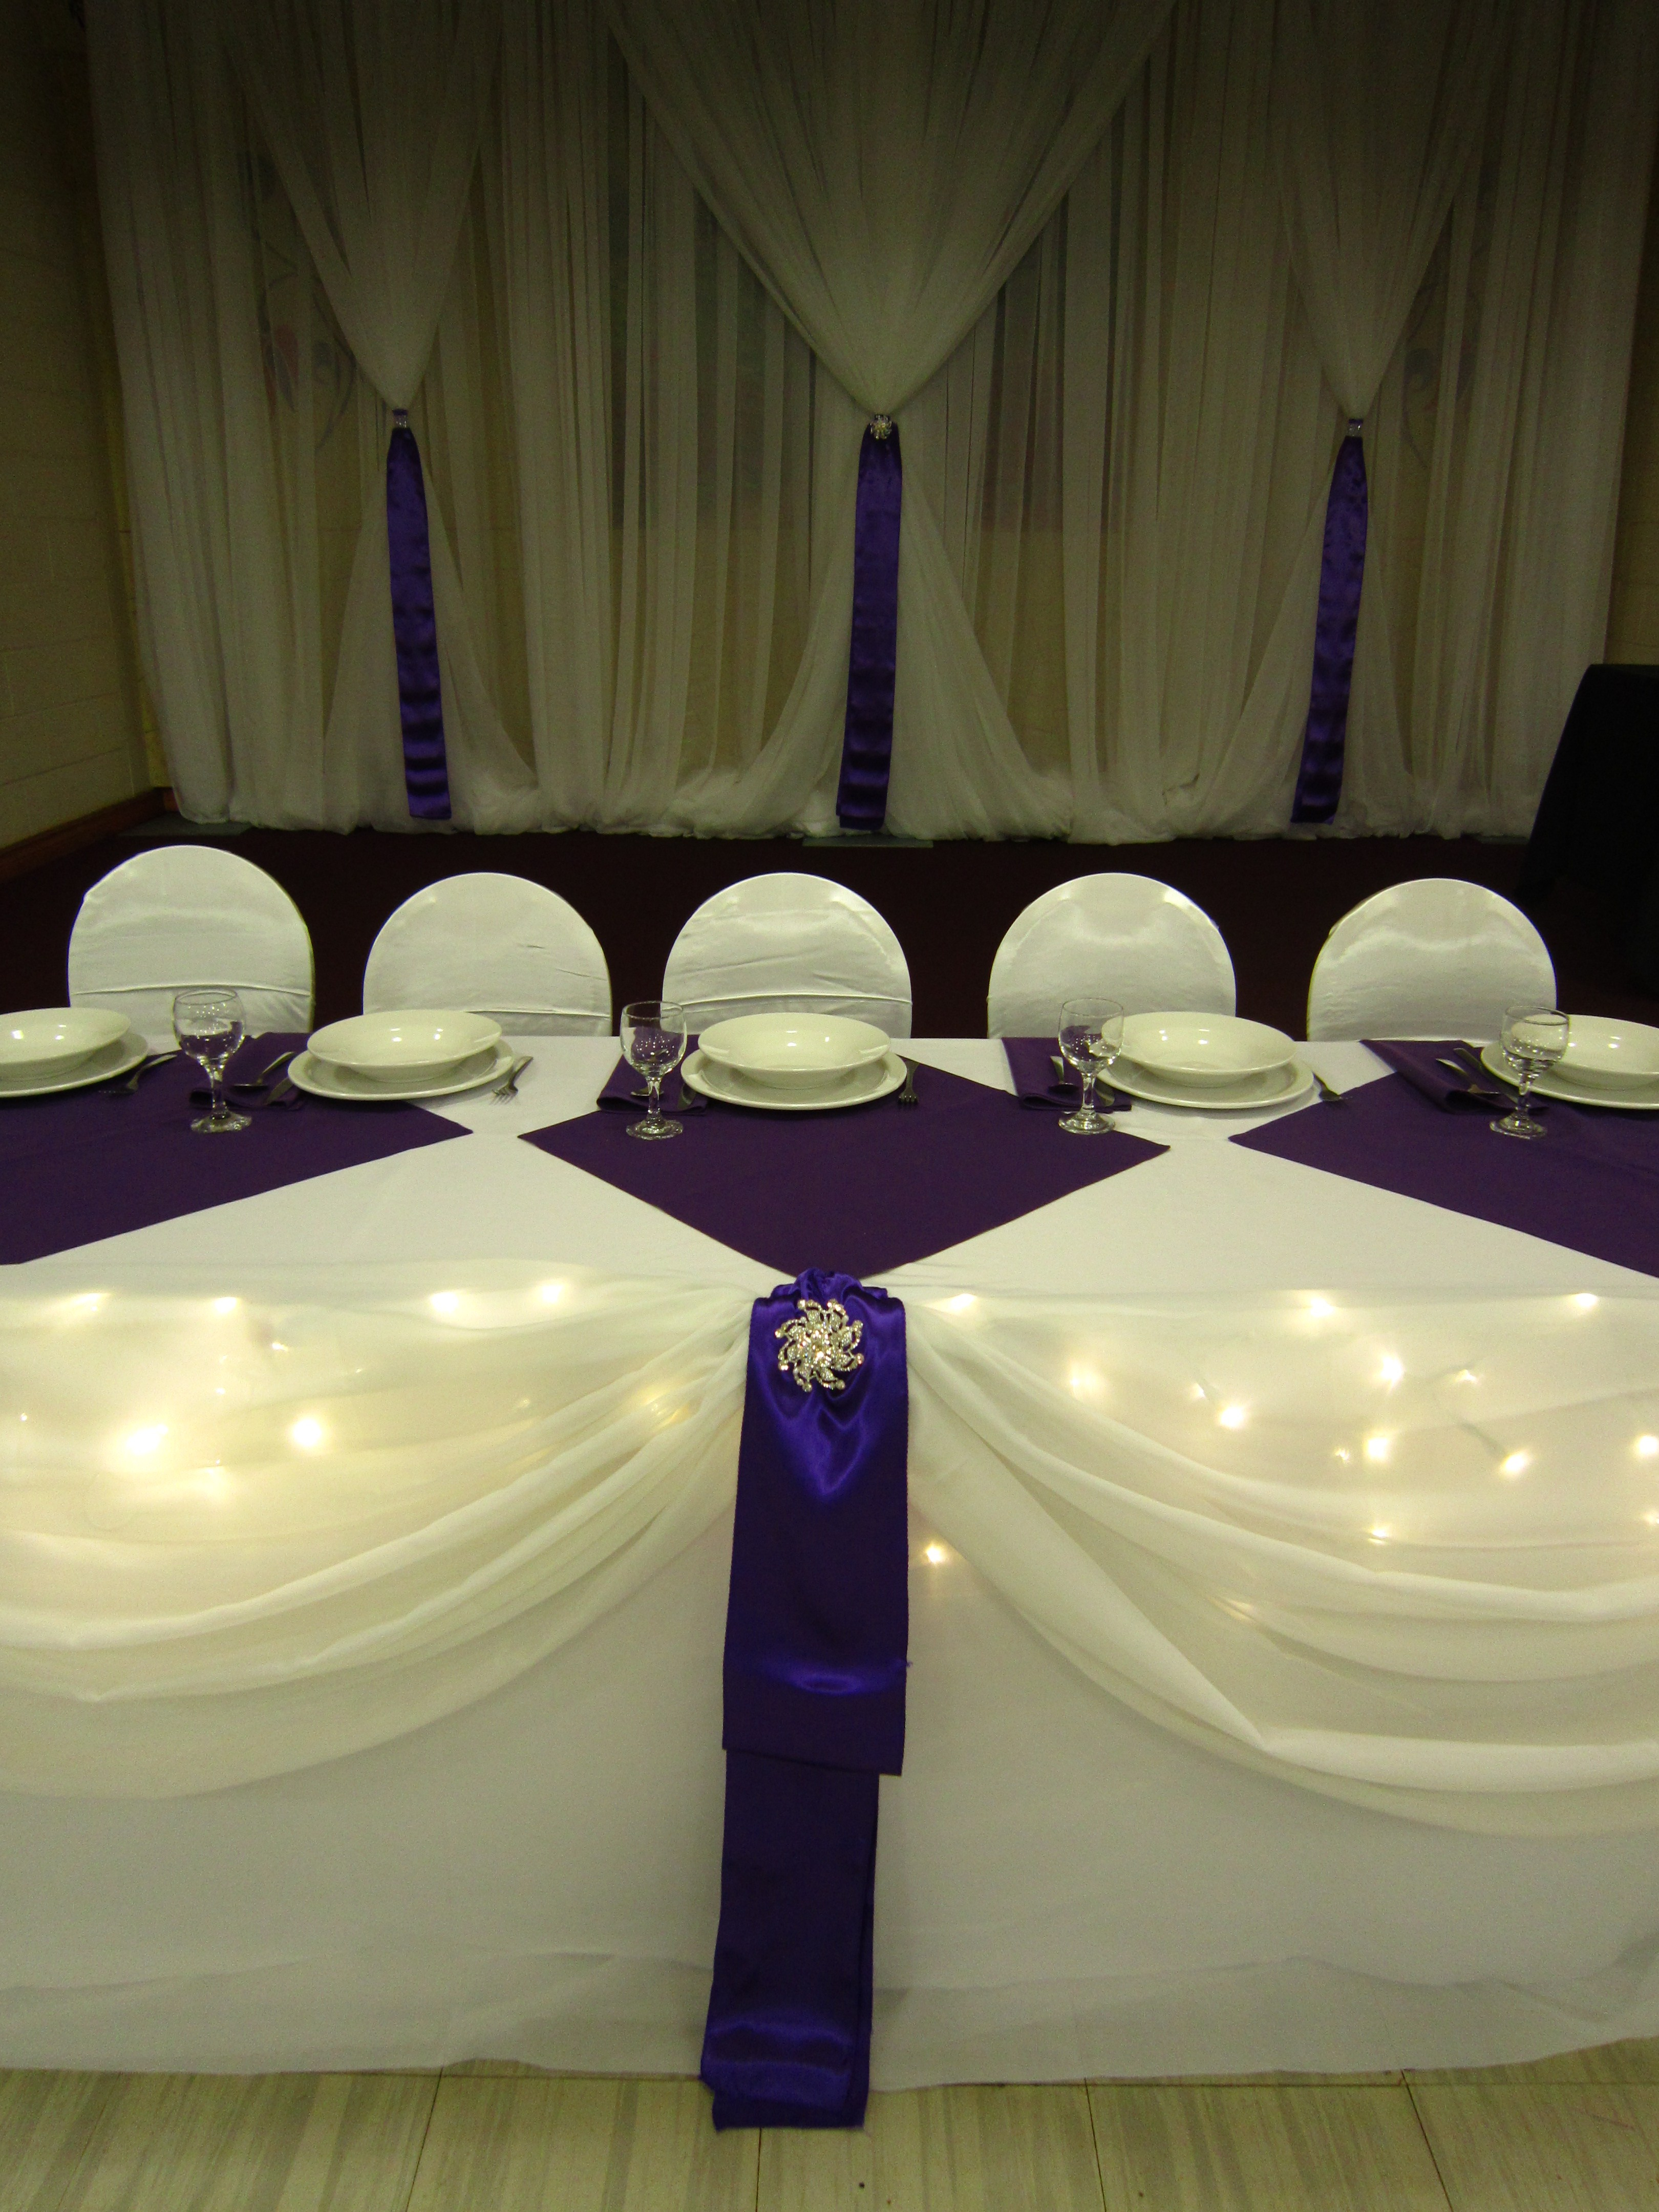 wedding chair covers toronto wrought iron feet head table with icicle lights   set the mood decor